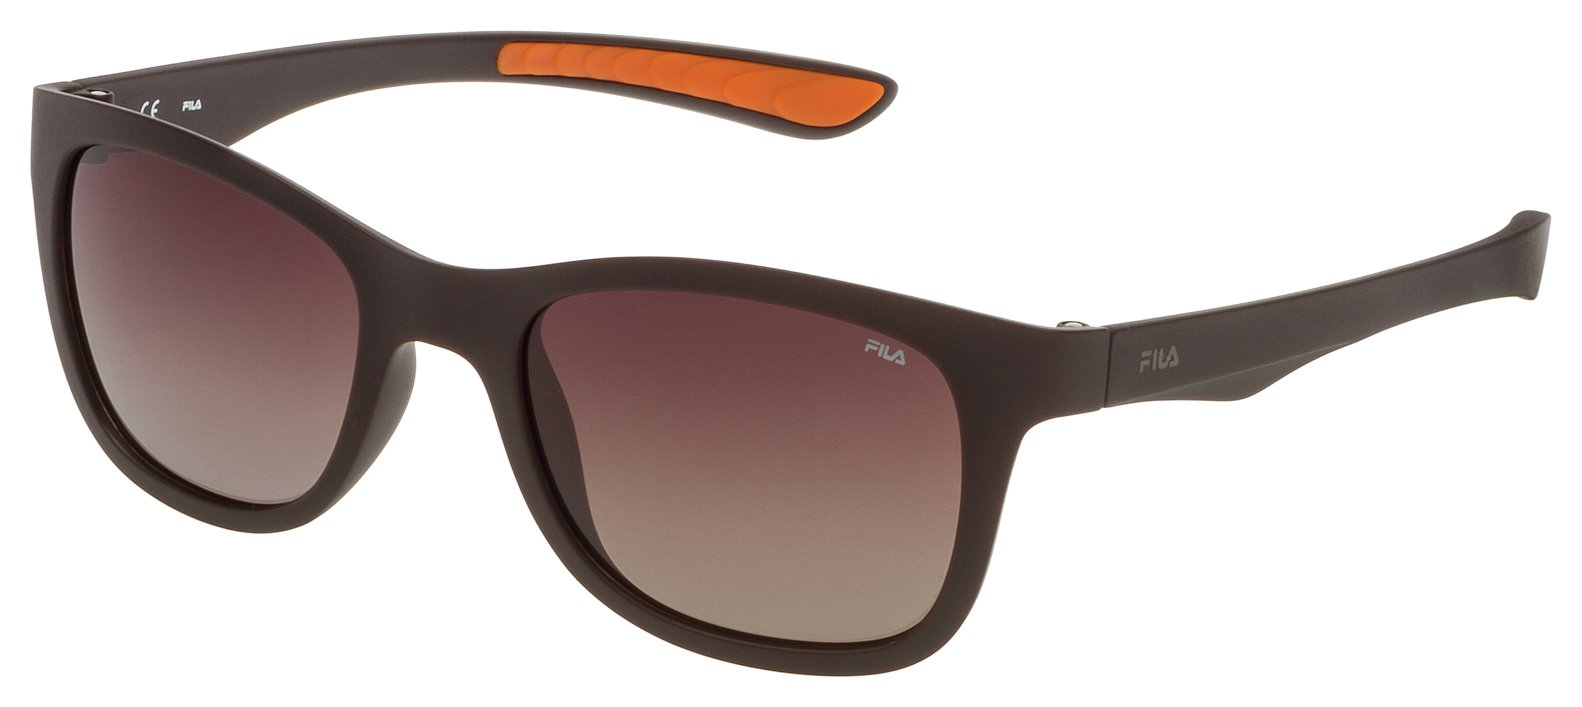 Image of Fila Shiny Intermediate Brown Sunglasses.